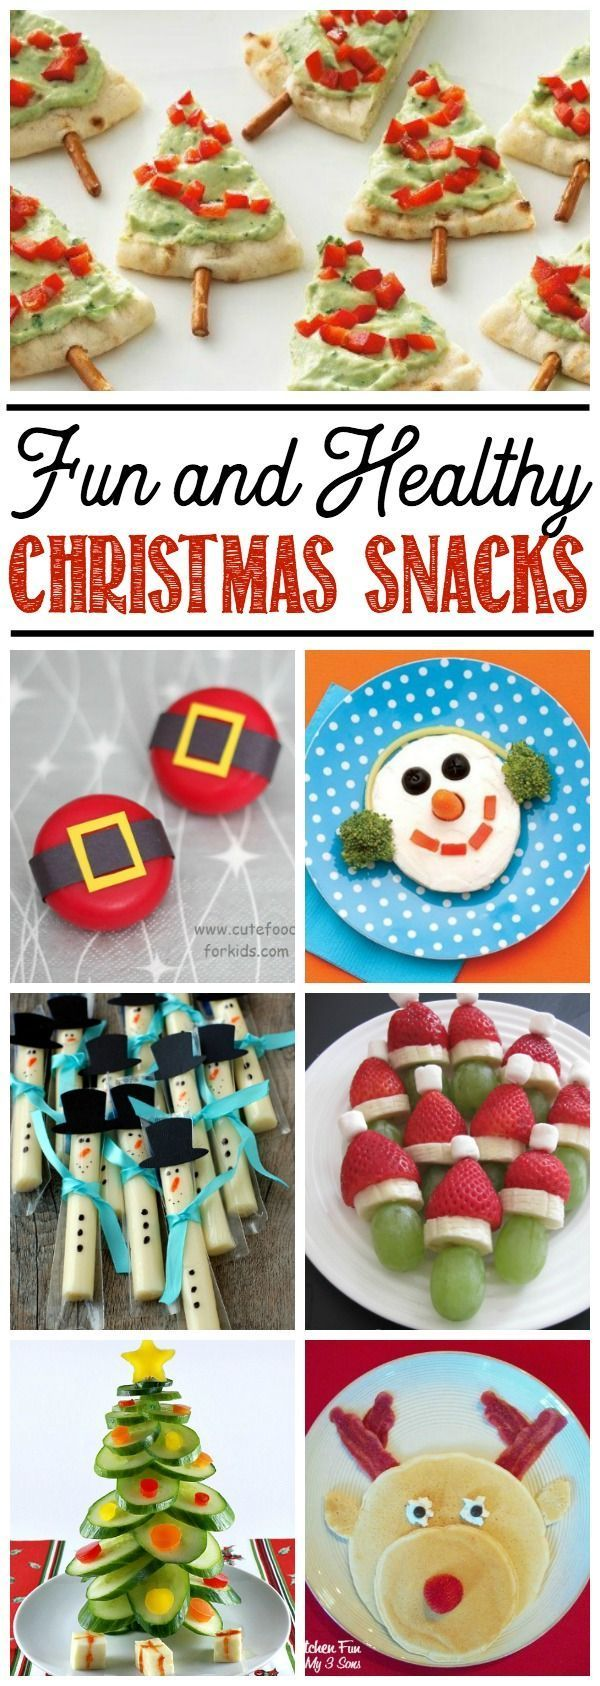 Fun and healthy Christmas snack ideas for kids!  Great for Christmas parties or class treats.